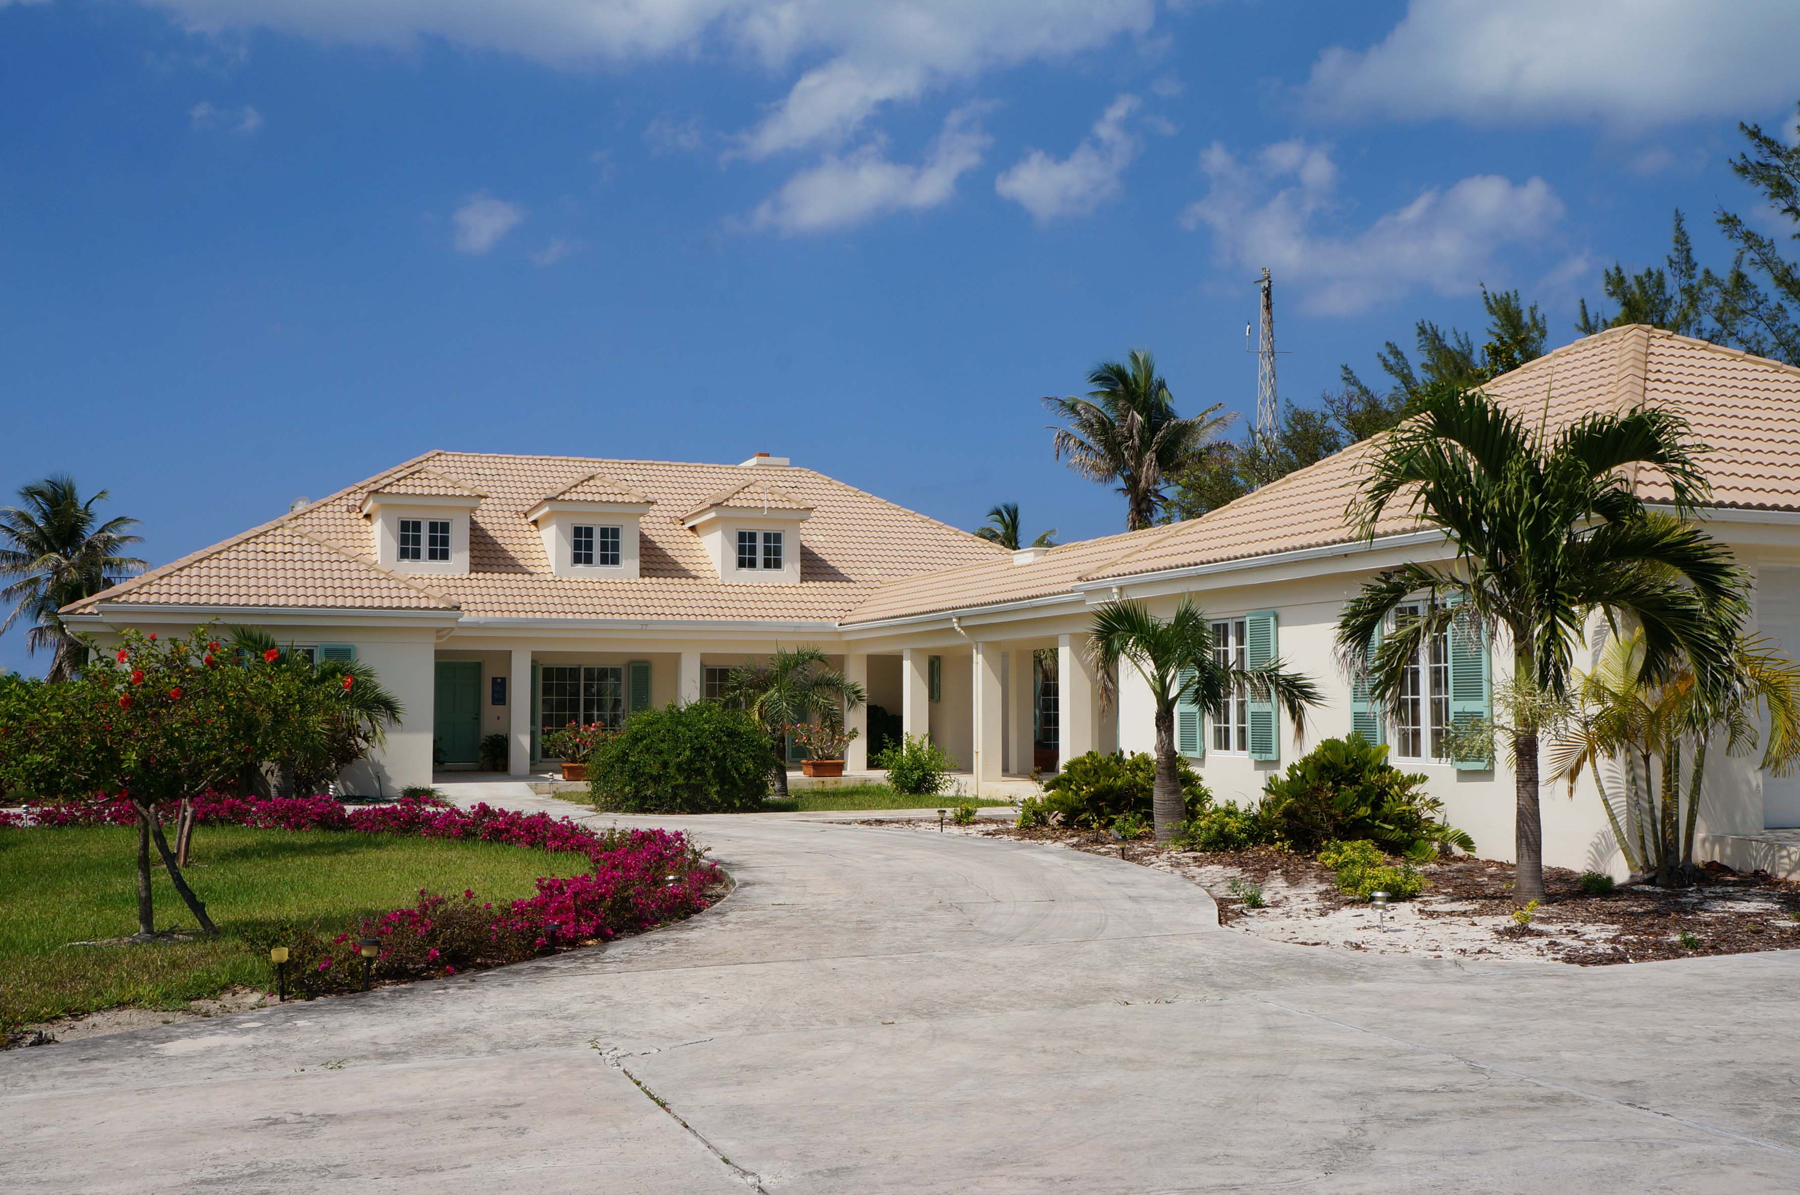 Single Family Home for Sale at Freedom - Beachfront Home Spanish Wells, Eleuthera Bahamas